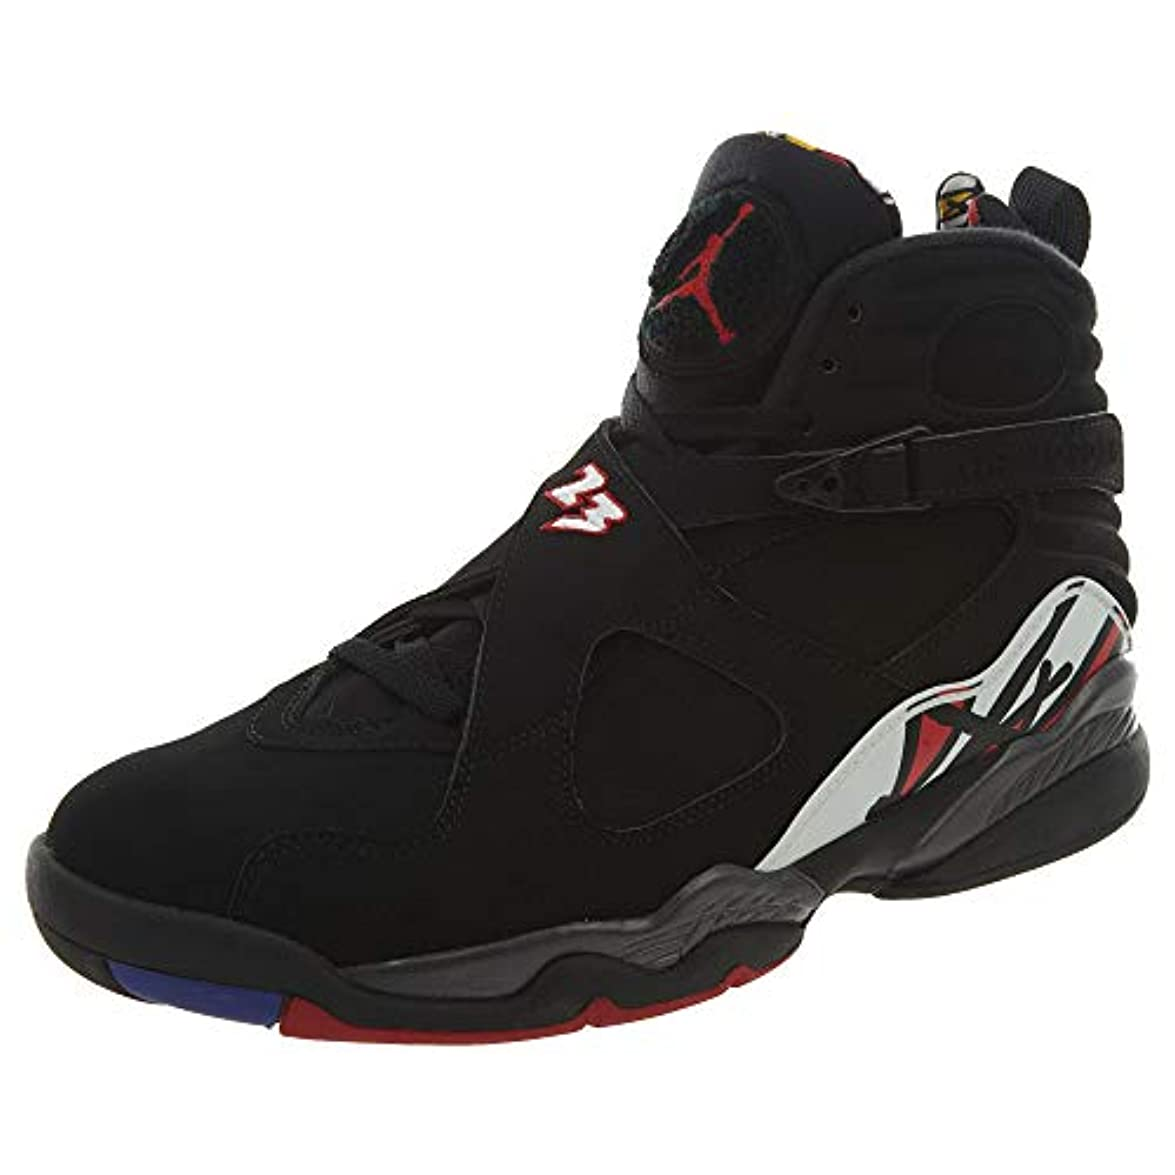 Air Jordan 8 Retro 'playoffs 2013 Release' - 305381-061a Size 13